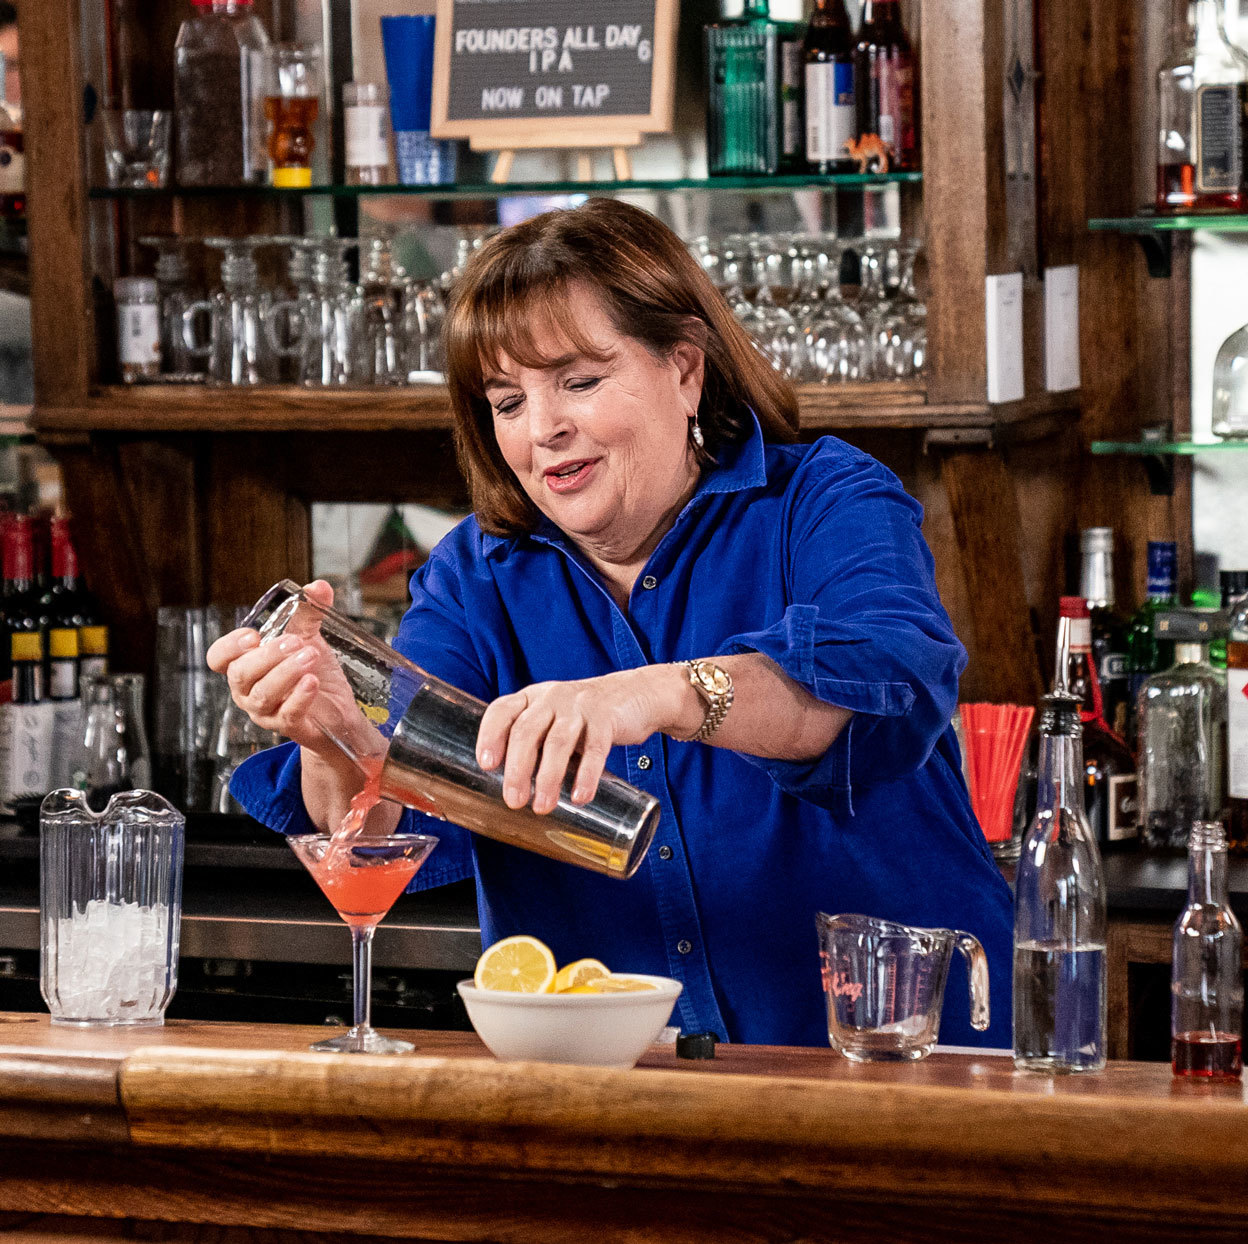 Ina Garten pouring a cocktail